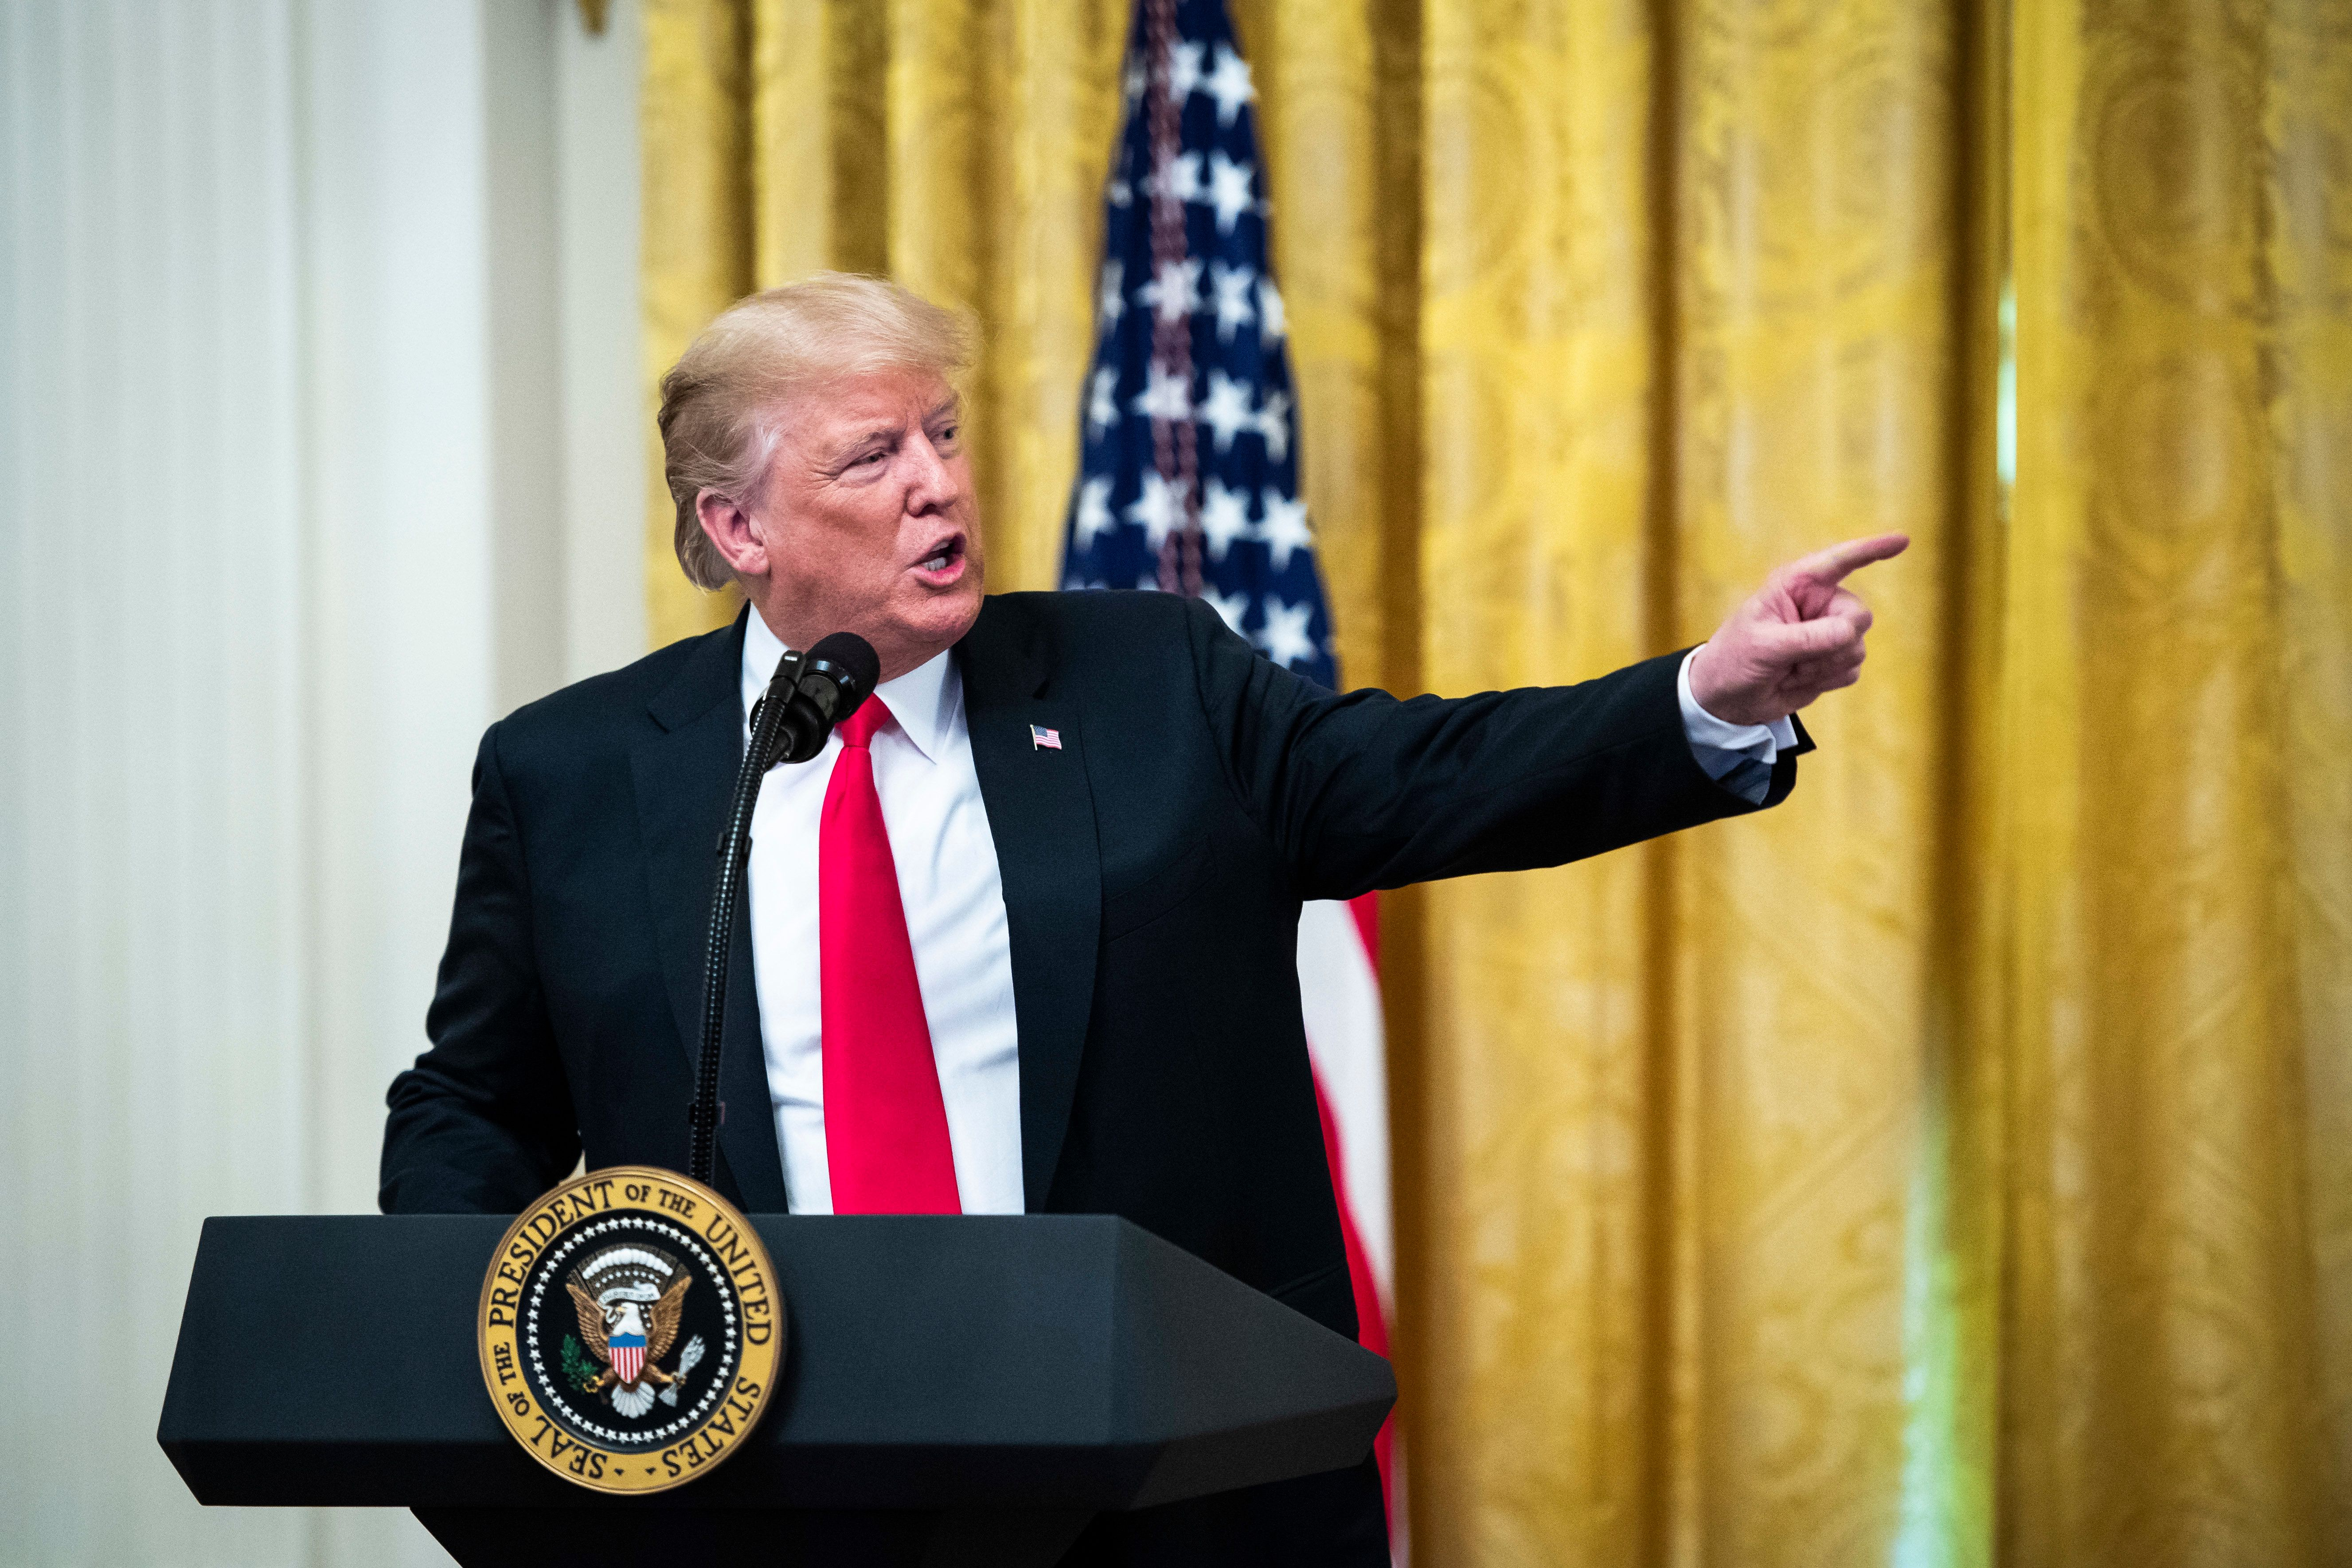 WASHINGTON, DC - AUGUST 20 : President Donald J. Trump speaks during a 'Salute to the Heroes of the Immigration and Customs Enforcement and Customs and Border Protection' event in East Room of the White House on Monday, Aug 20, 2018 in Washington, DC. (Photo by Jabin Botsford/The Washington Post via Getty Images)